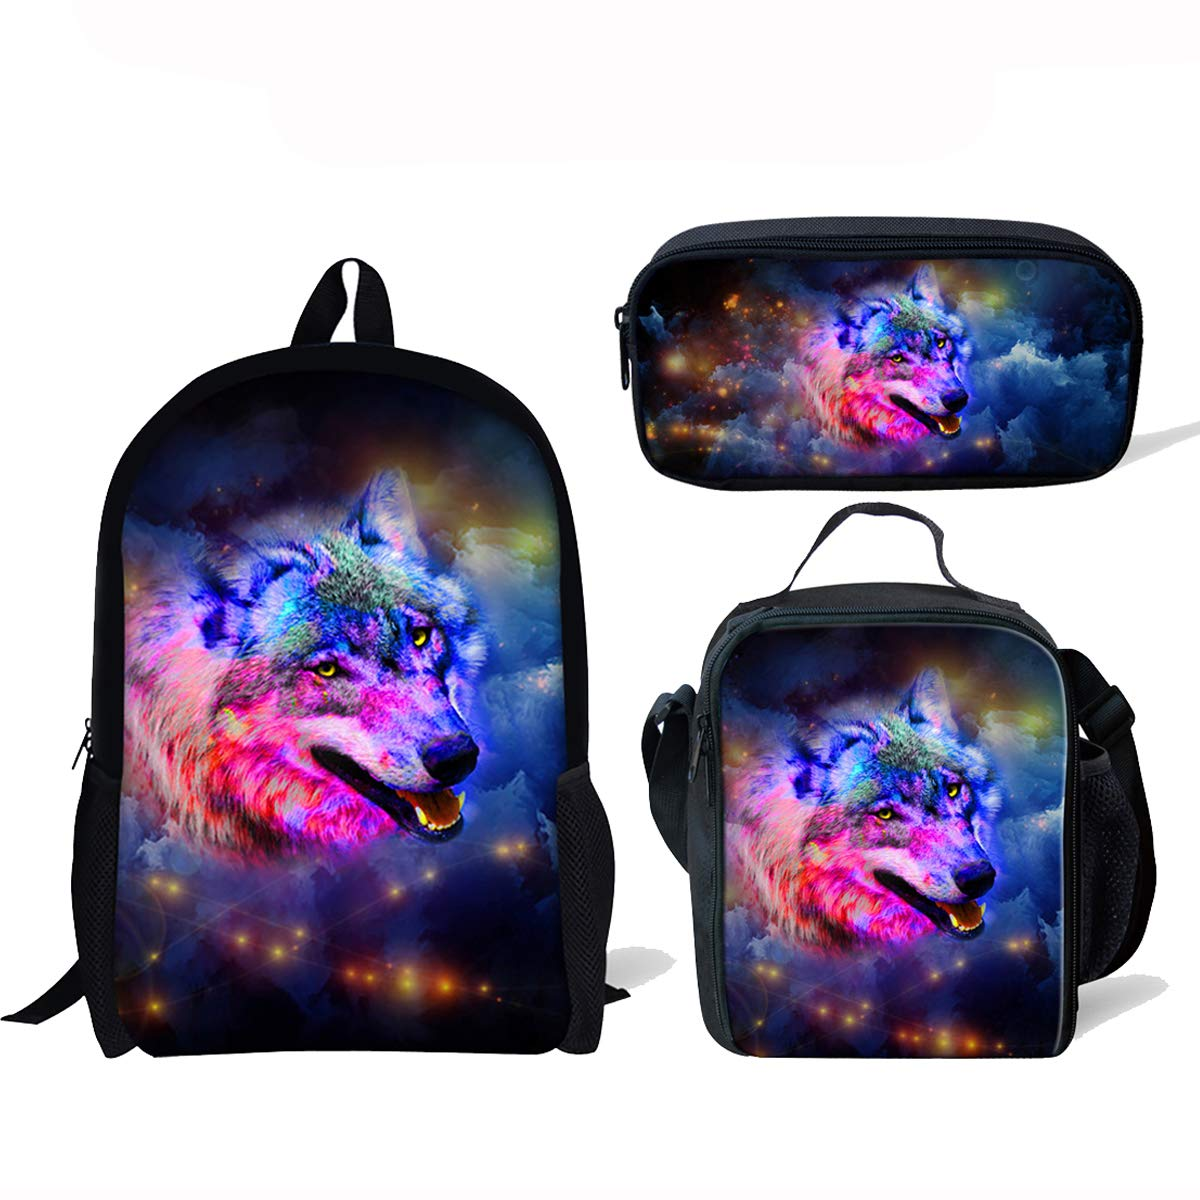 ThiKin Cute Galaxy Wolf School Backpacks for Kids Boy Girls Lightweight Backpack Bookbags Set by Micandle